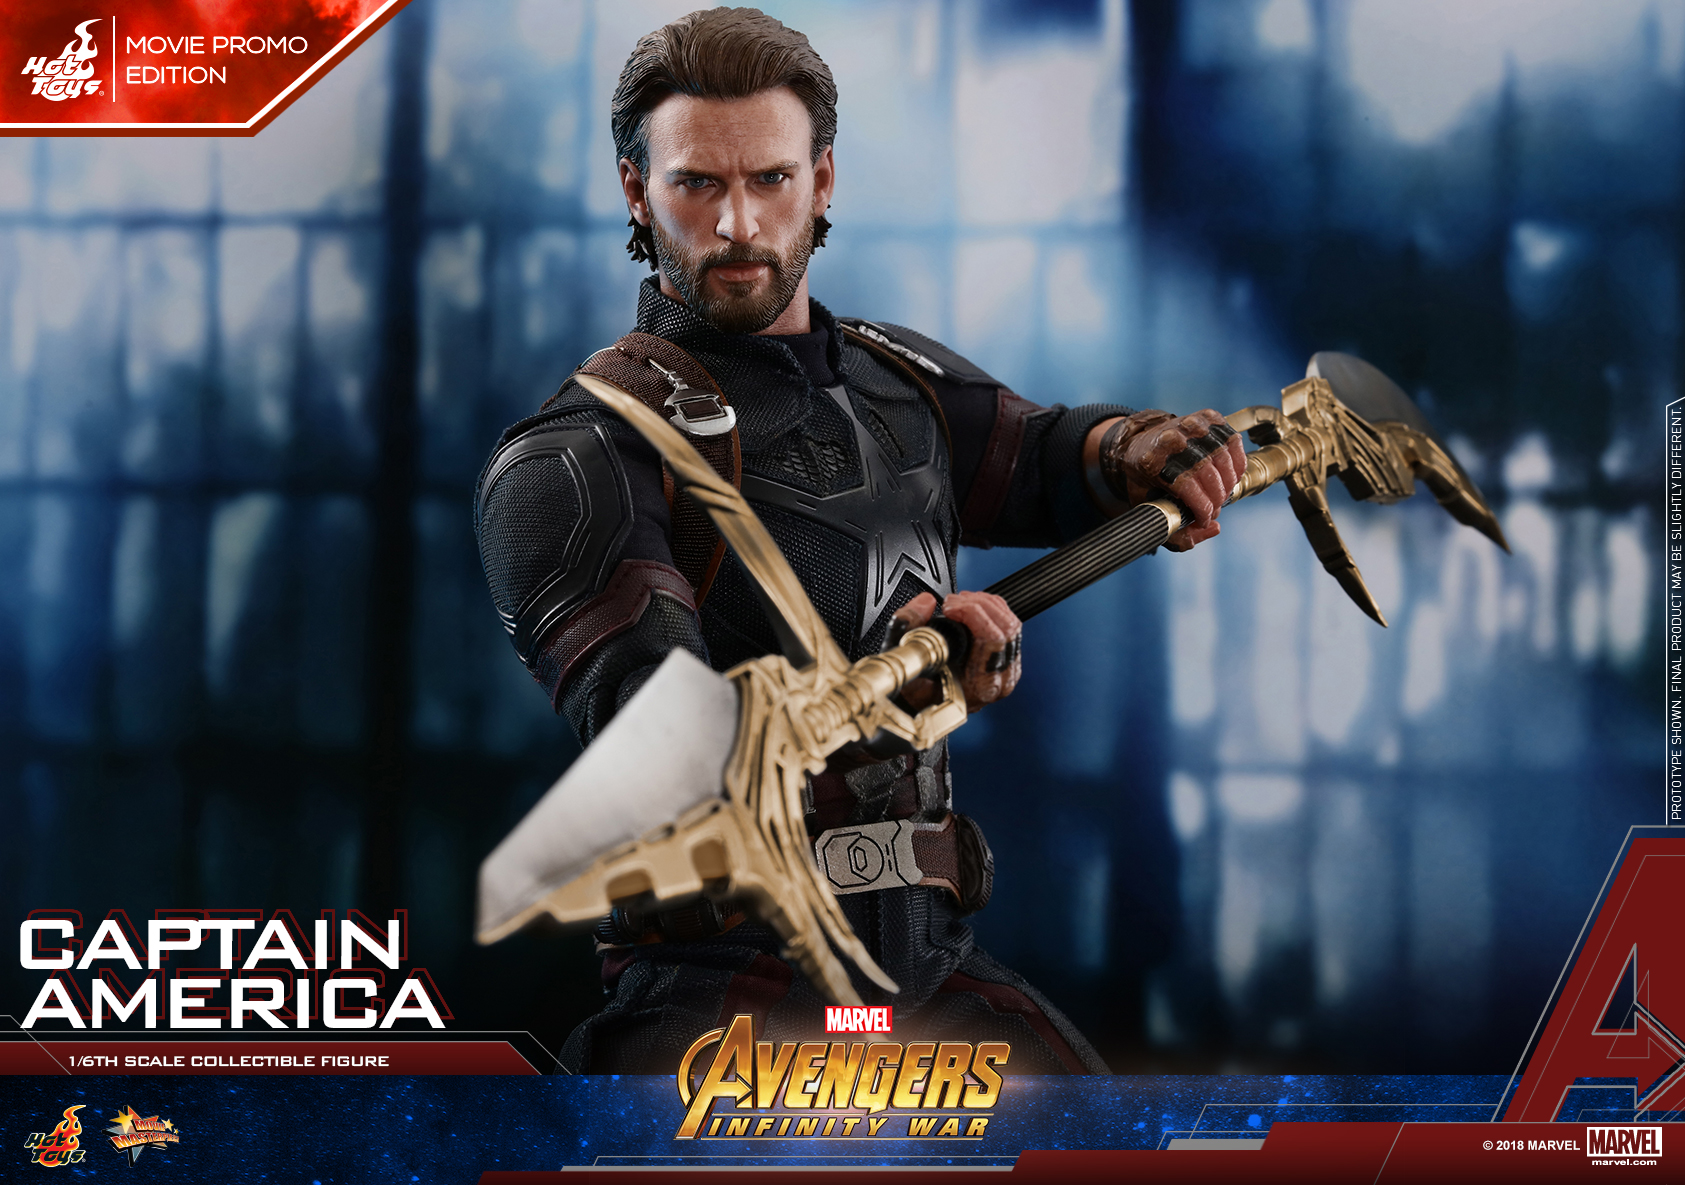 Hot Toys - AIW - Captain America collectible figure (Movie Promo)_Mystery Weapon PR02